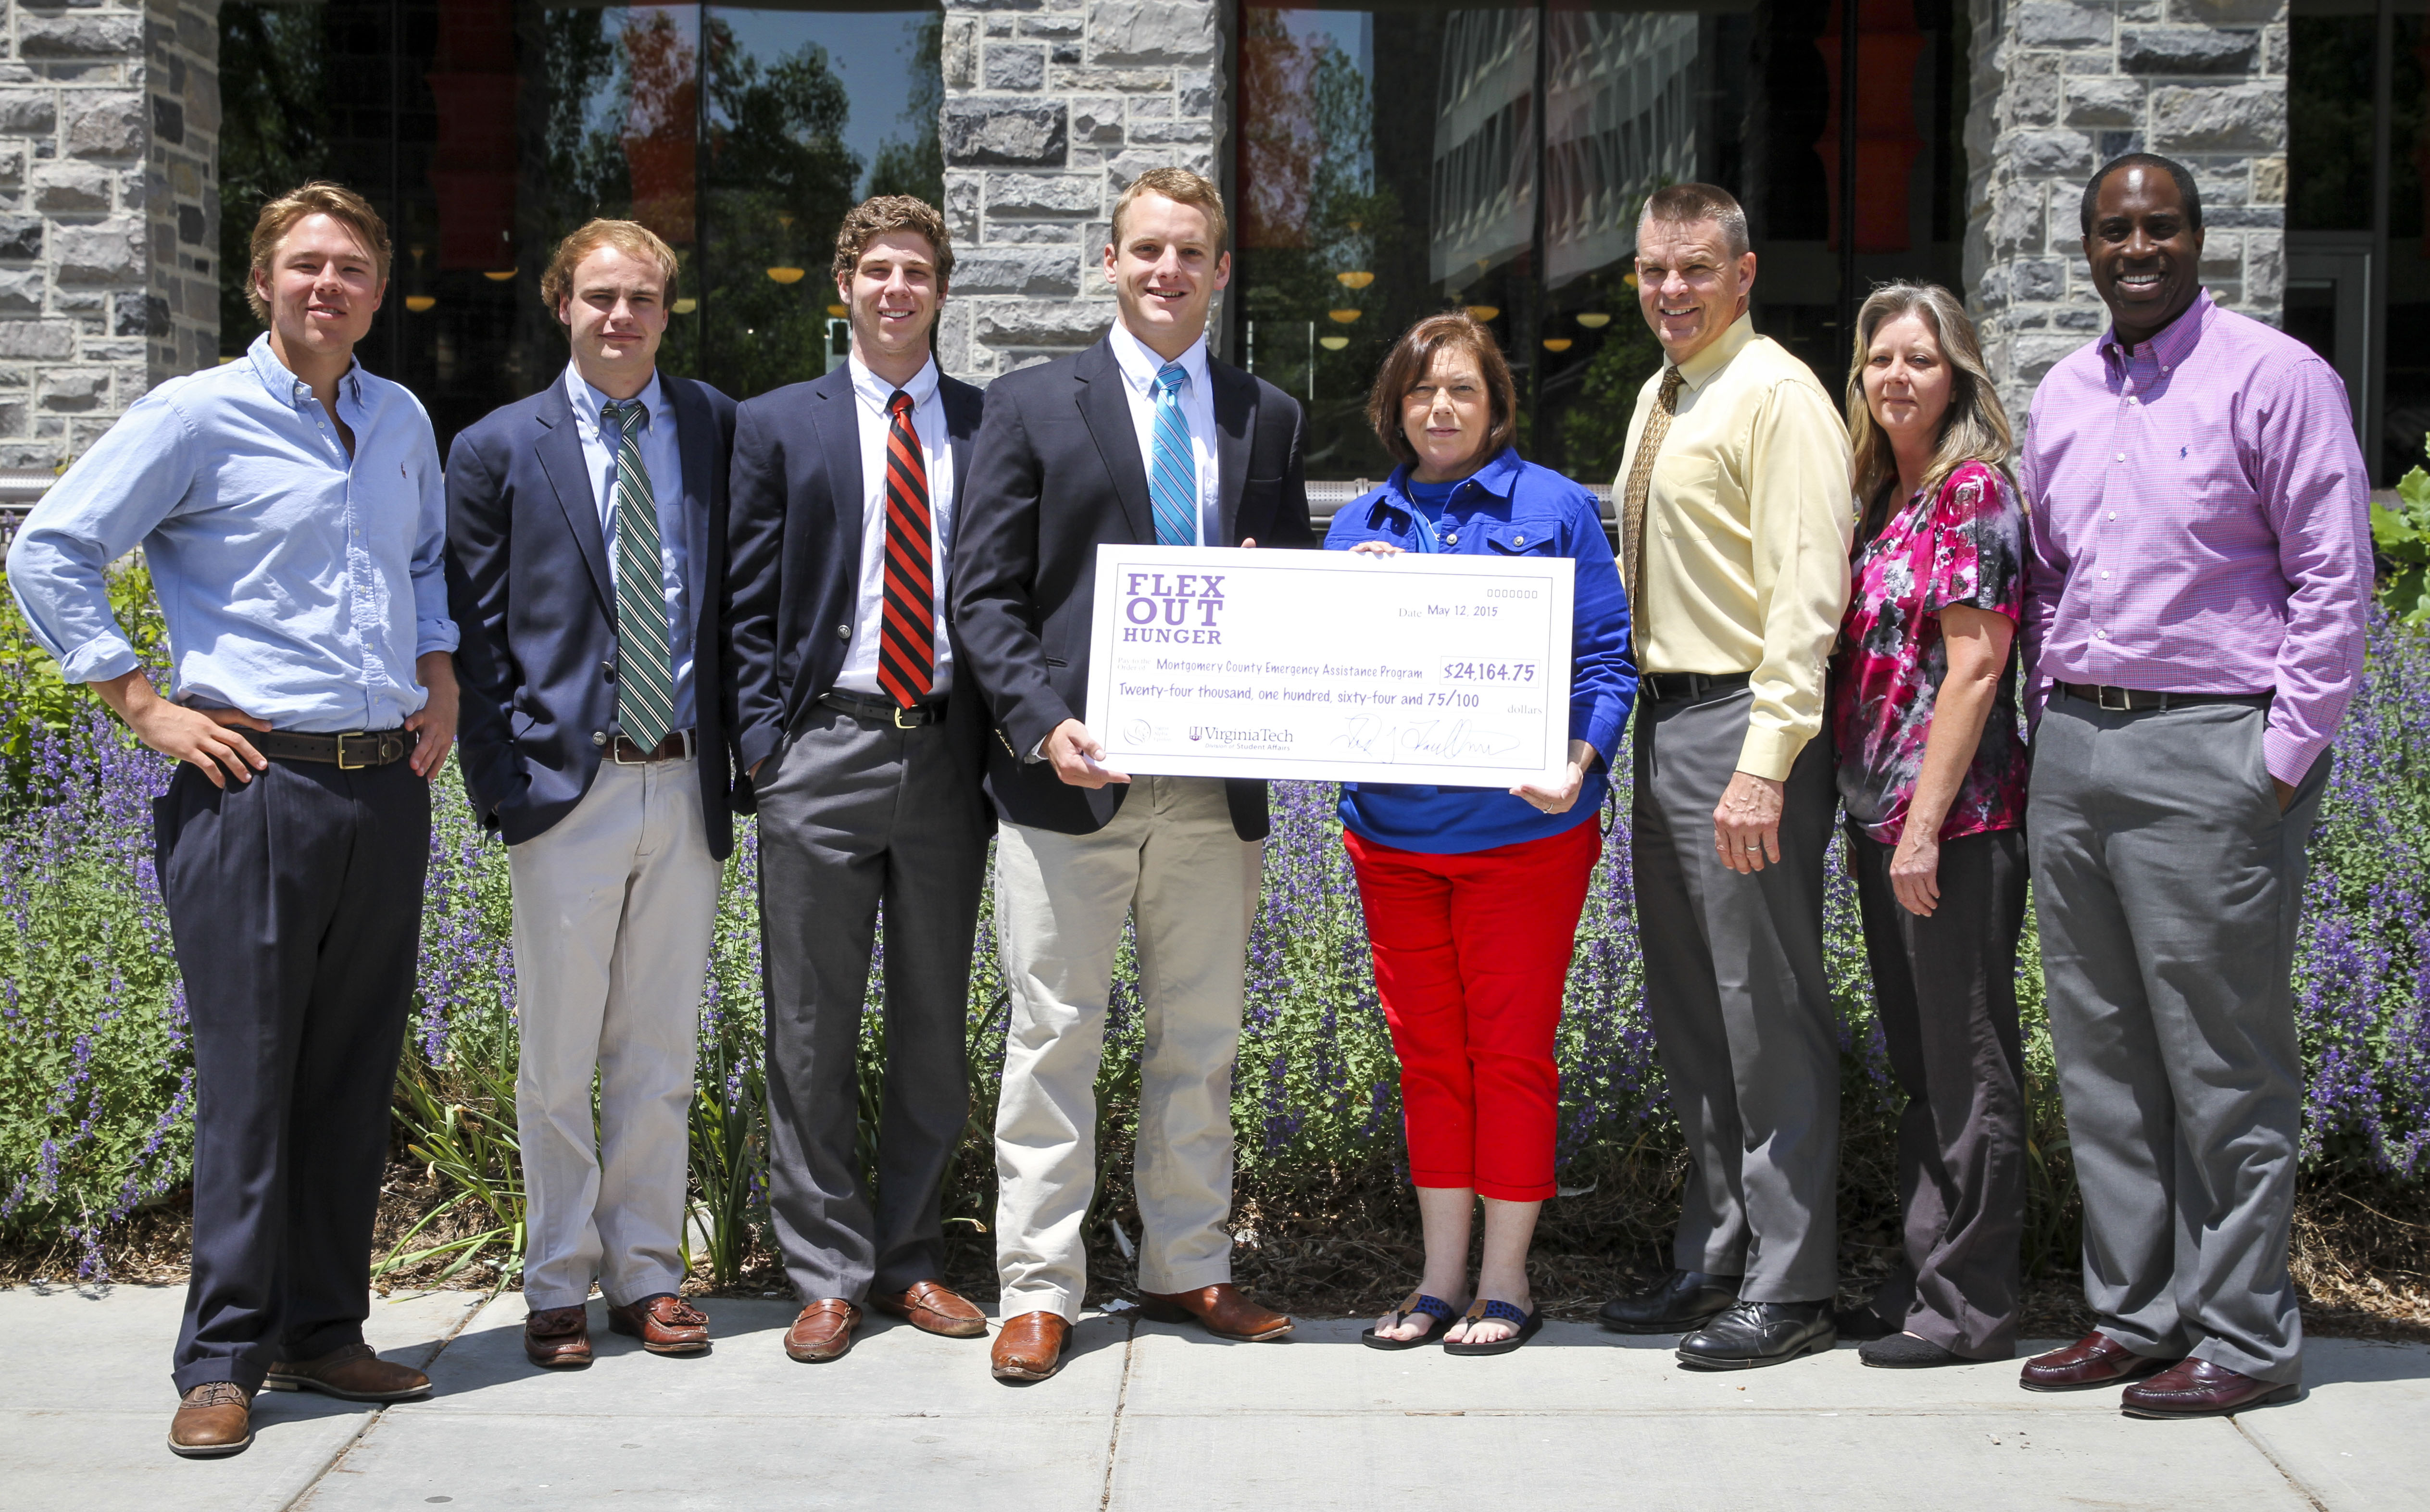 Group image of SAE members and recipients of check.